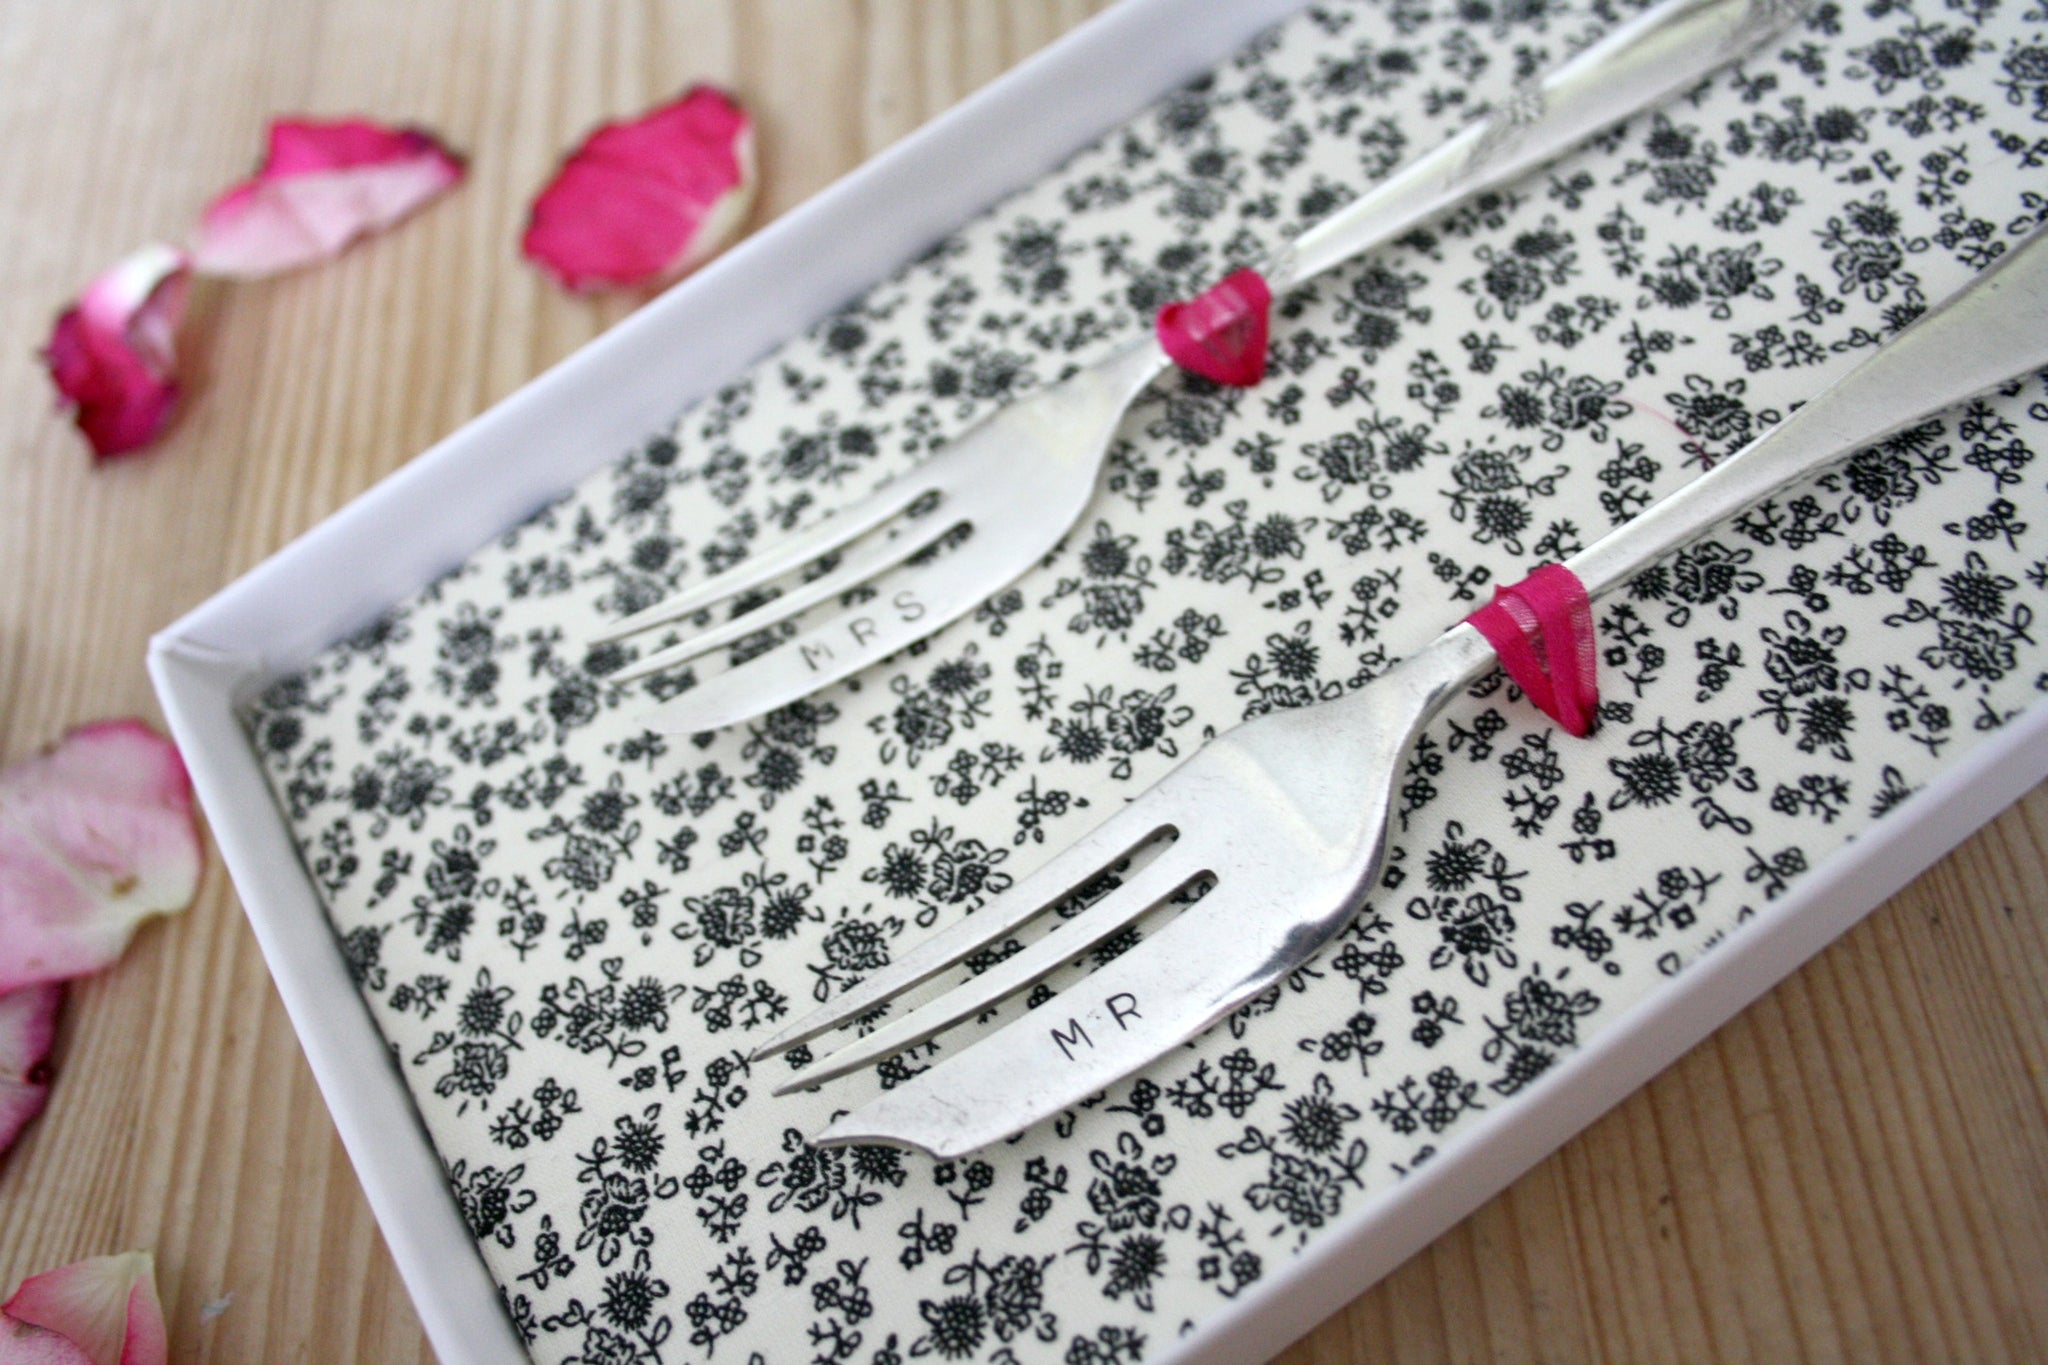 'Mr & Mrs' cake fork set - Dales Country Interiors